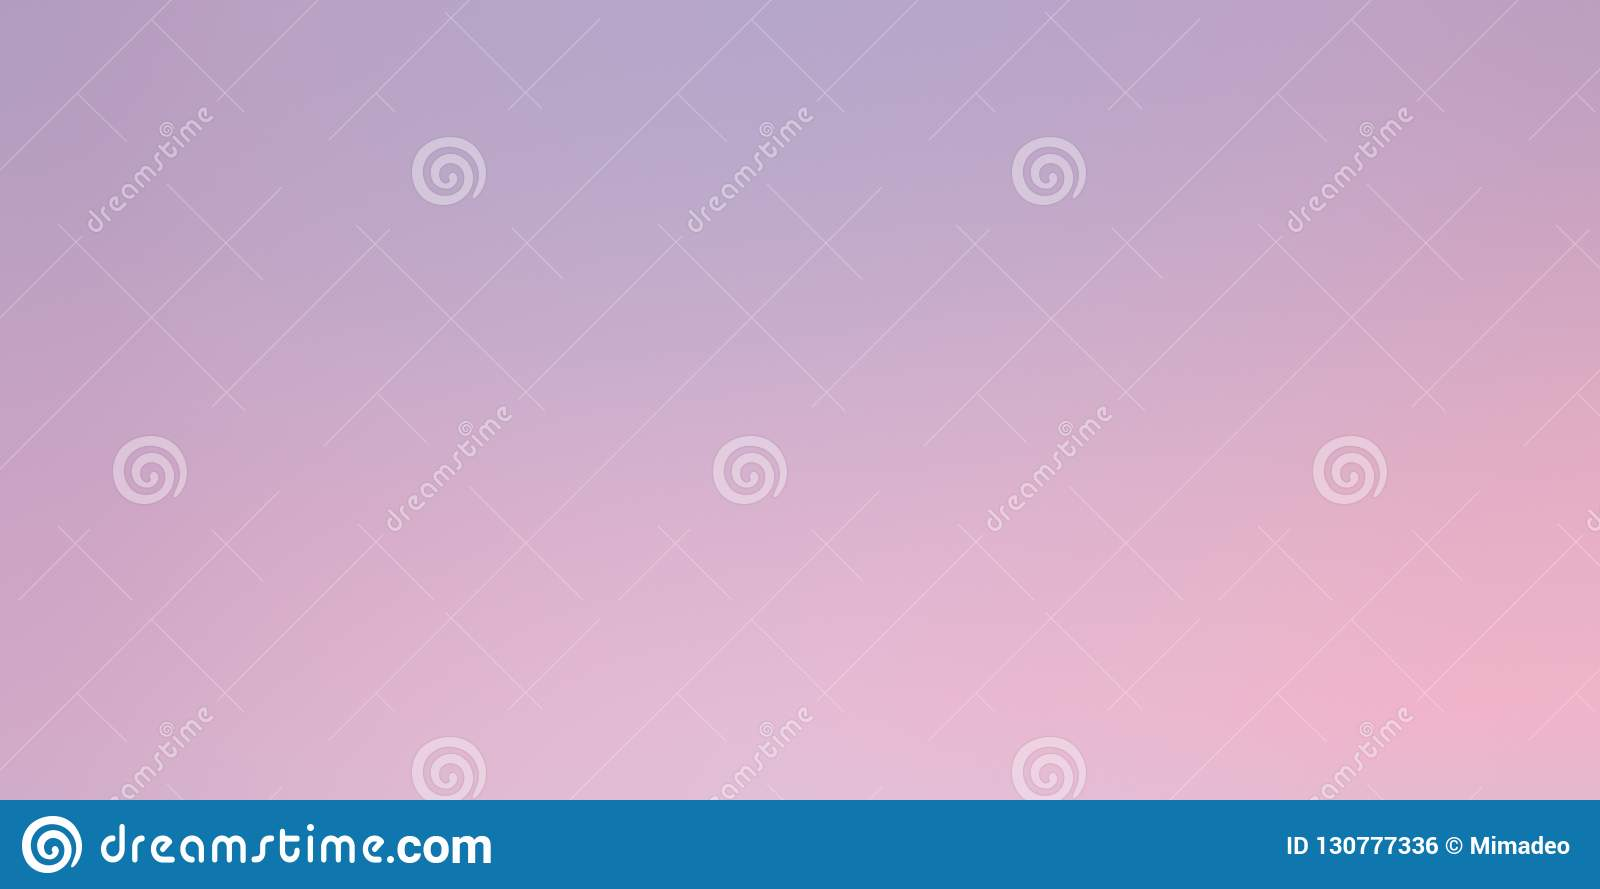 Photo of sunset sky gradient background